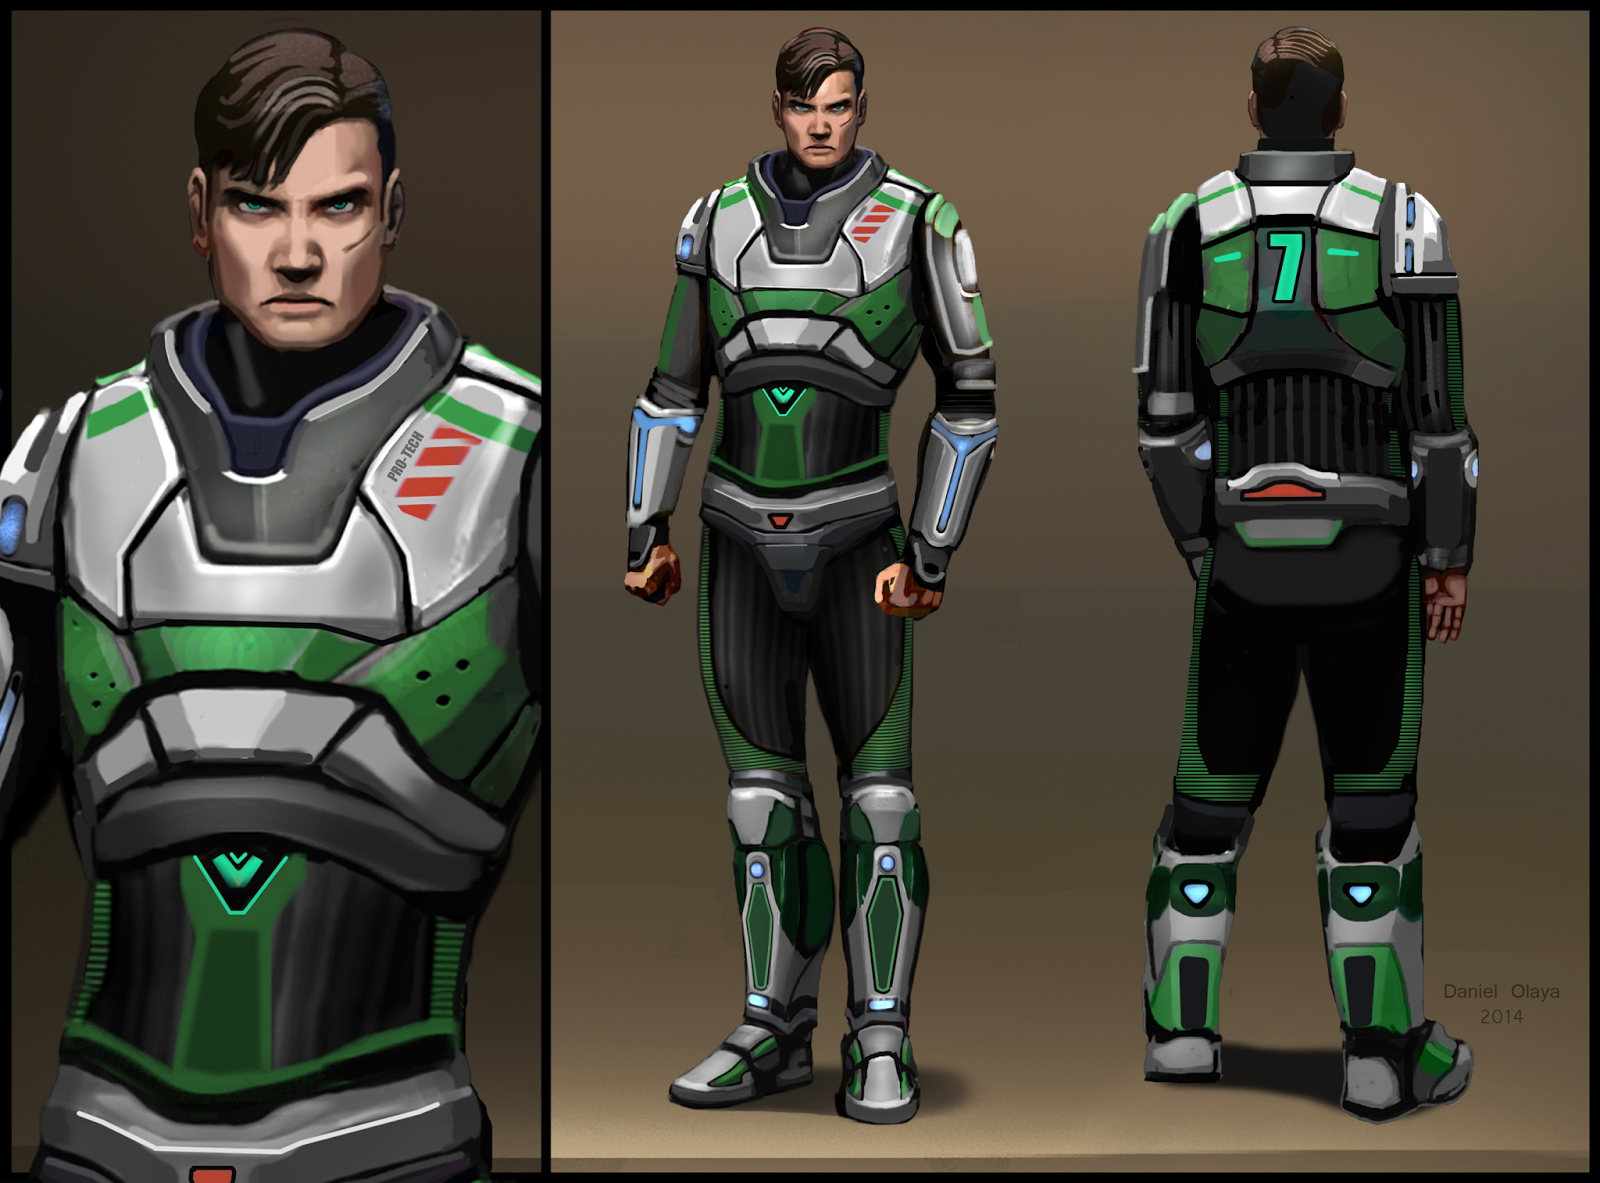 Character Design Unreal 4 : Zaibot s characters designs unreal tournament forums